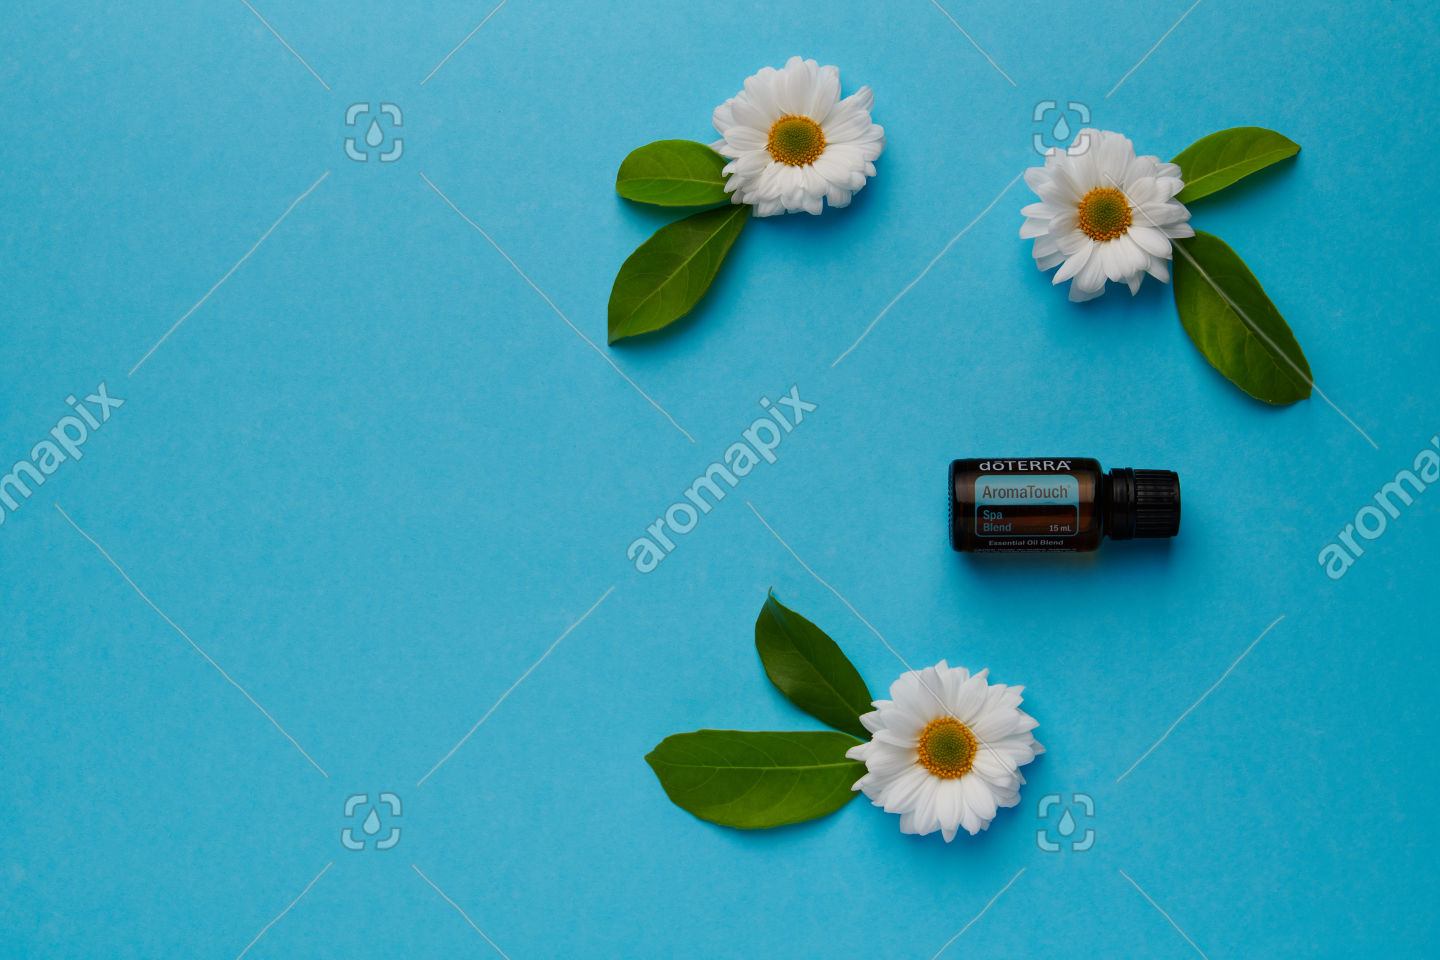 doTERRA AromaTouch with flowers and leaves on blue